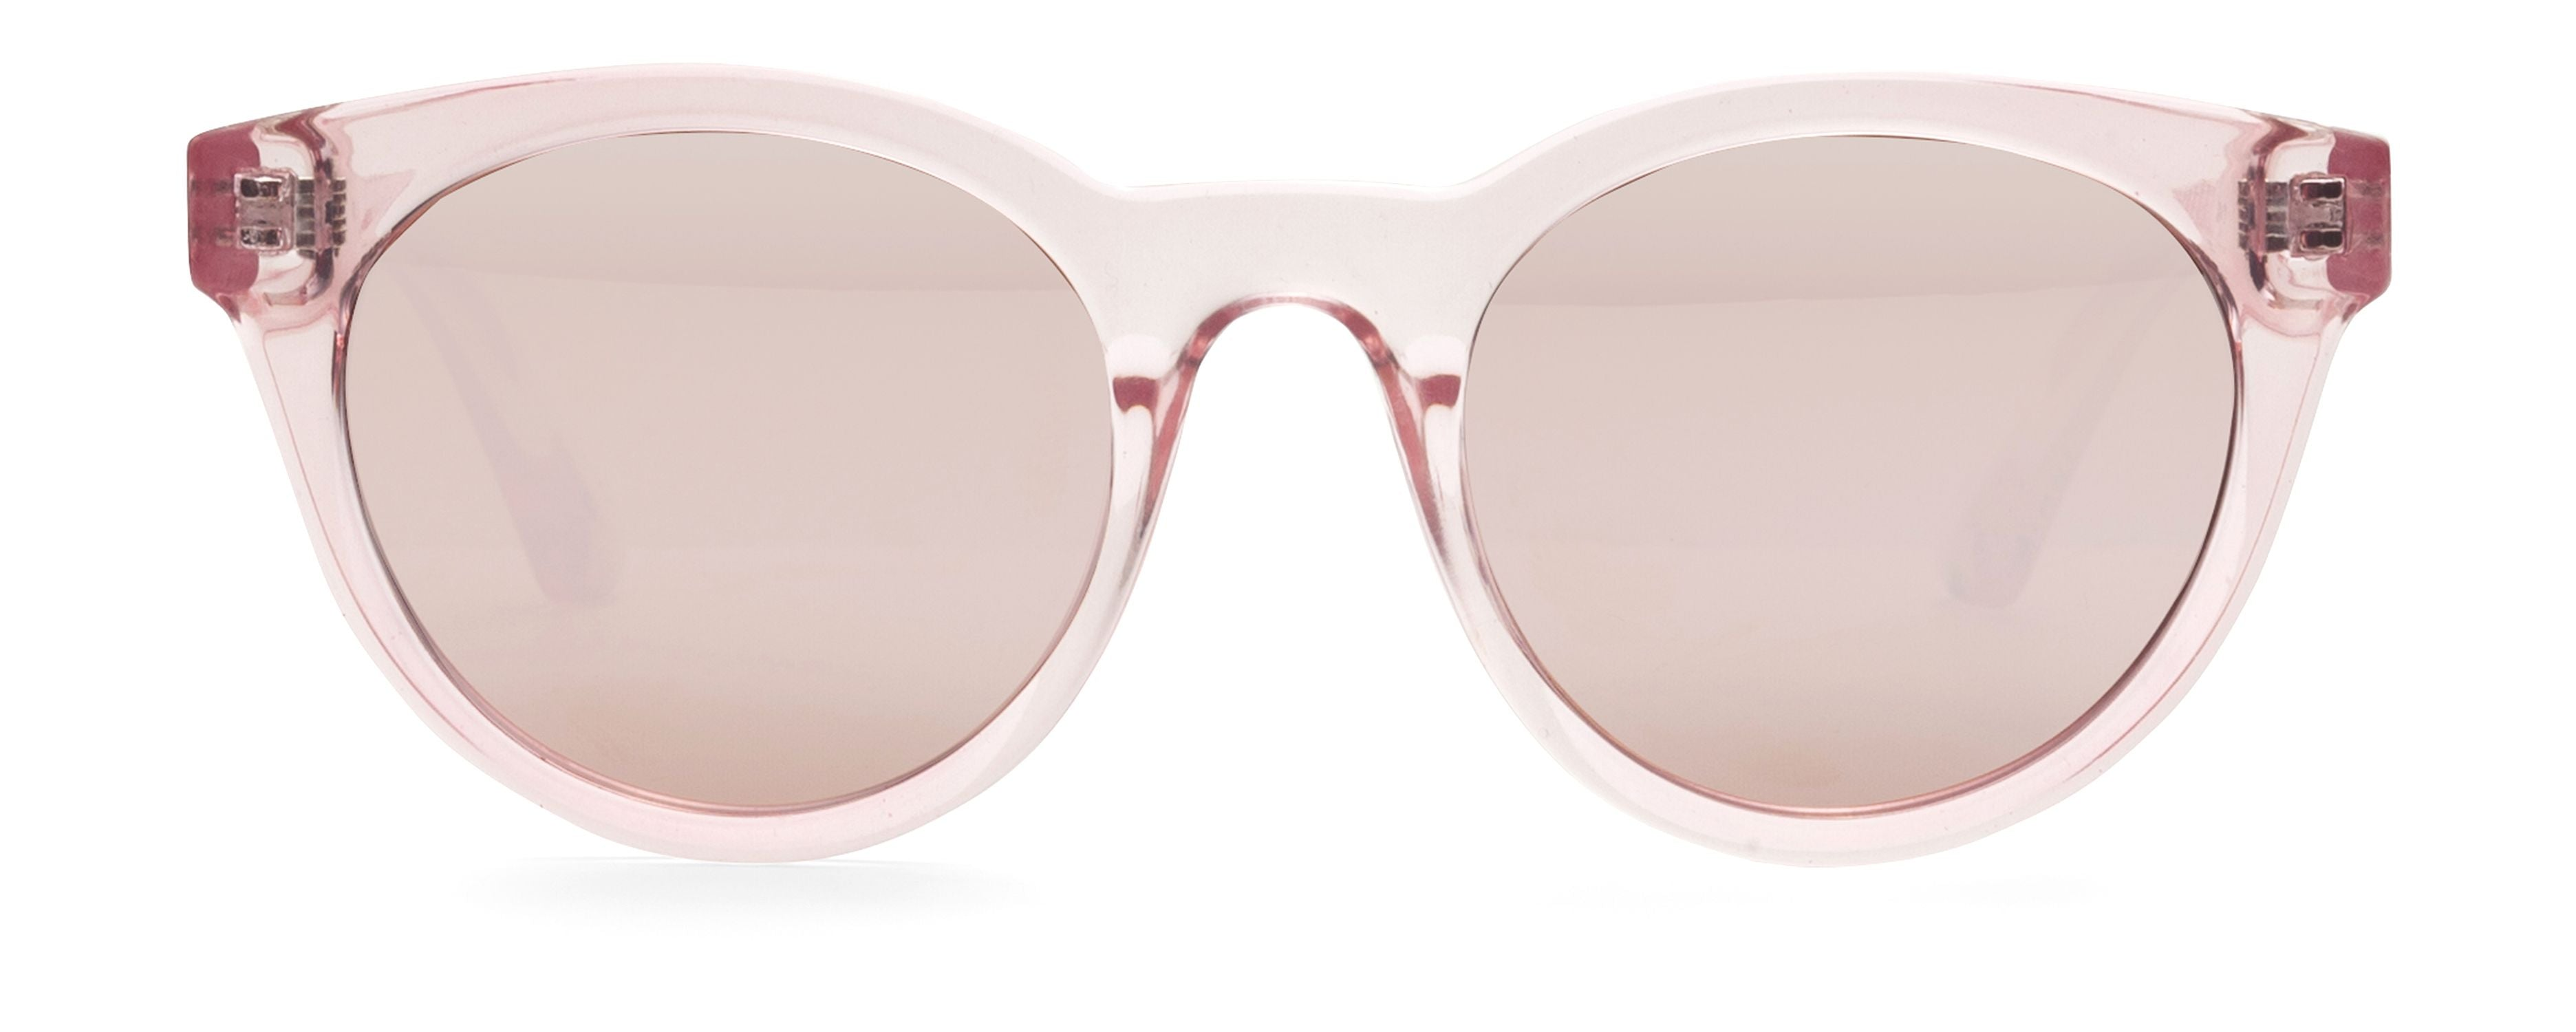 FIZZ Pink JUNiA Kids Sunglasses